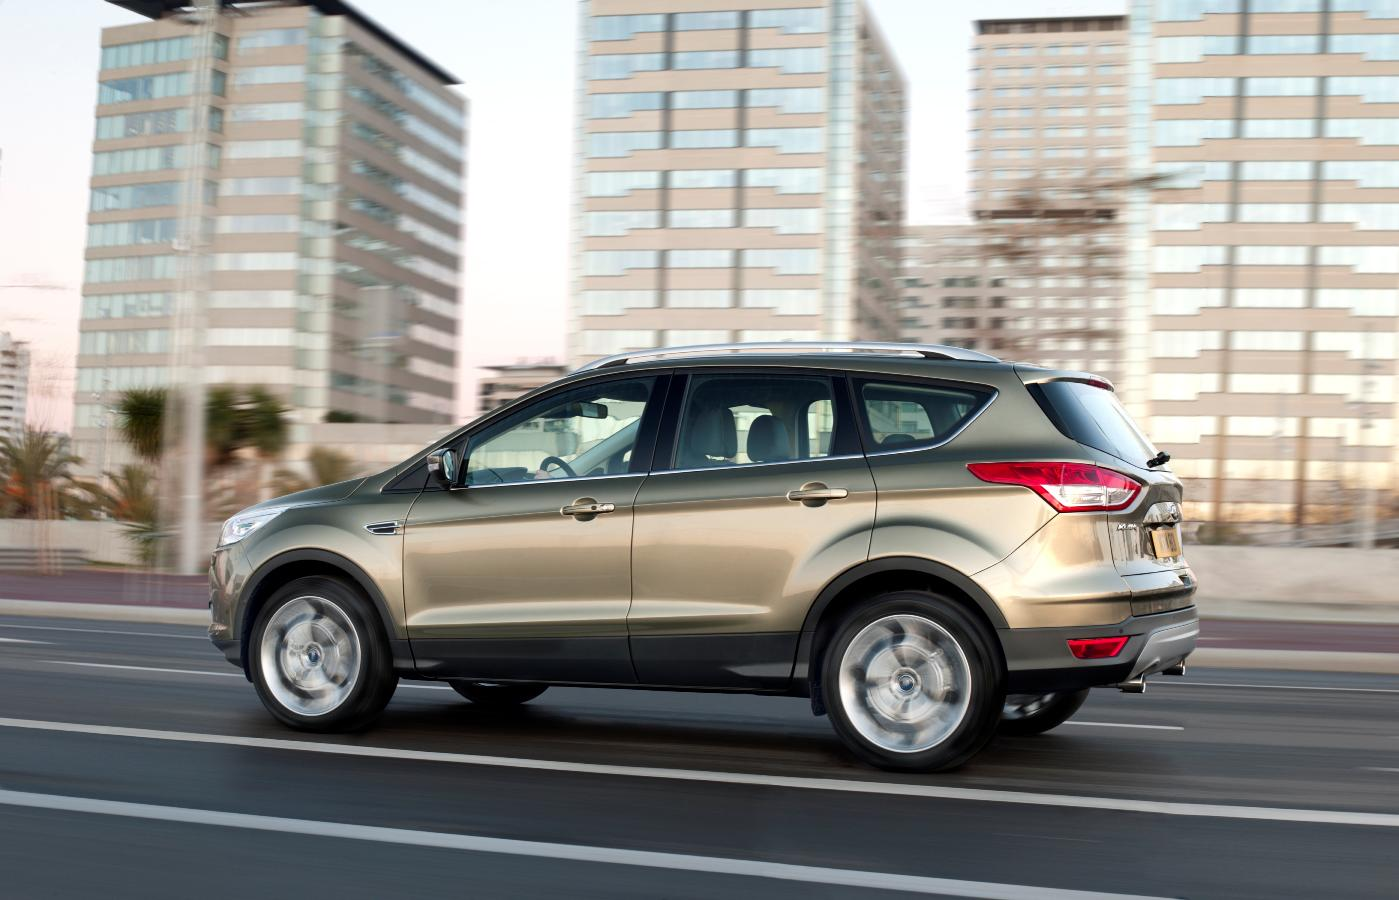 2012 ford kuga the stylish and spacious compact suv. Black Bedroom Furniture Sets. Home Design Ideas